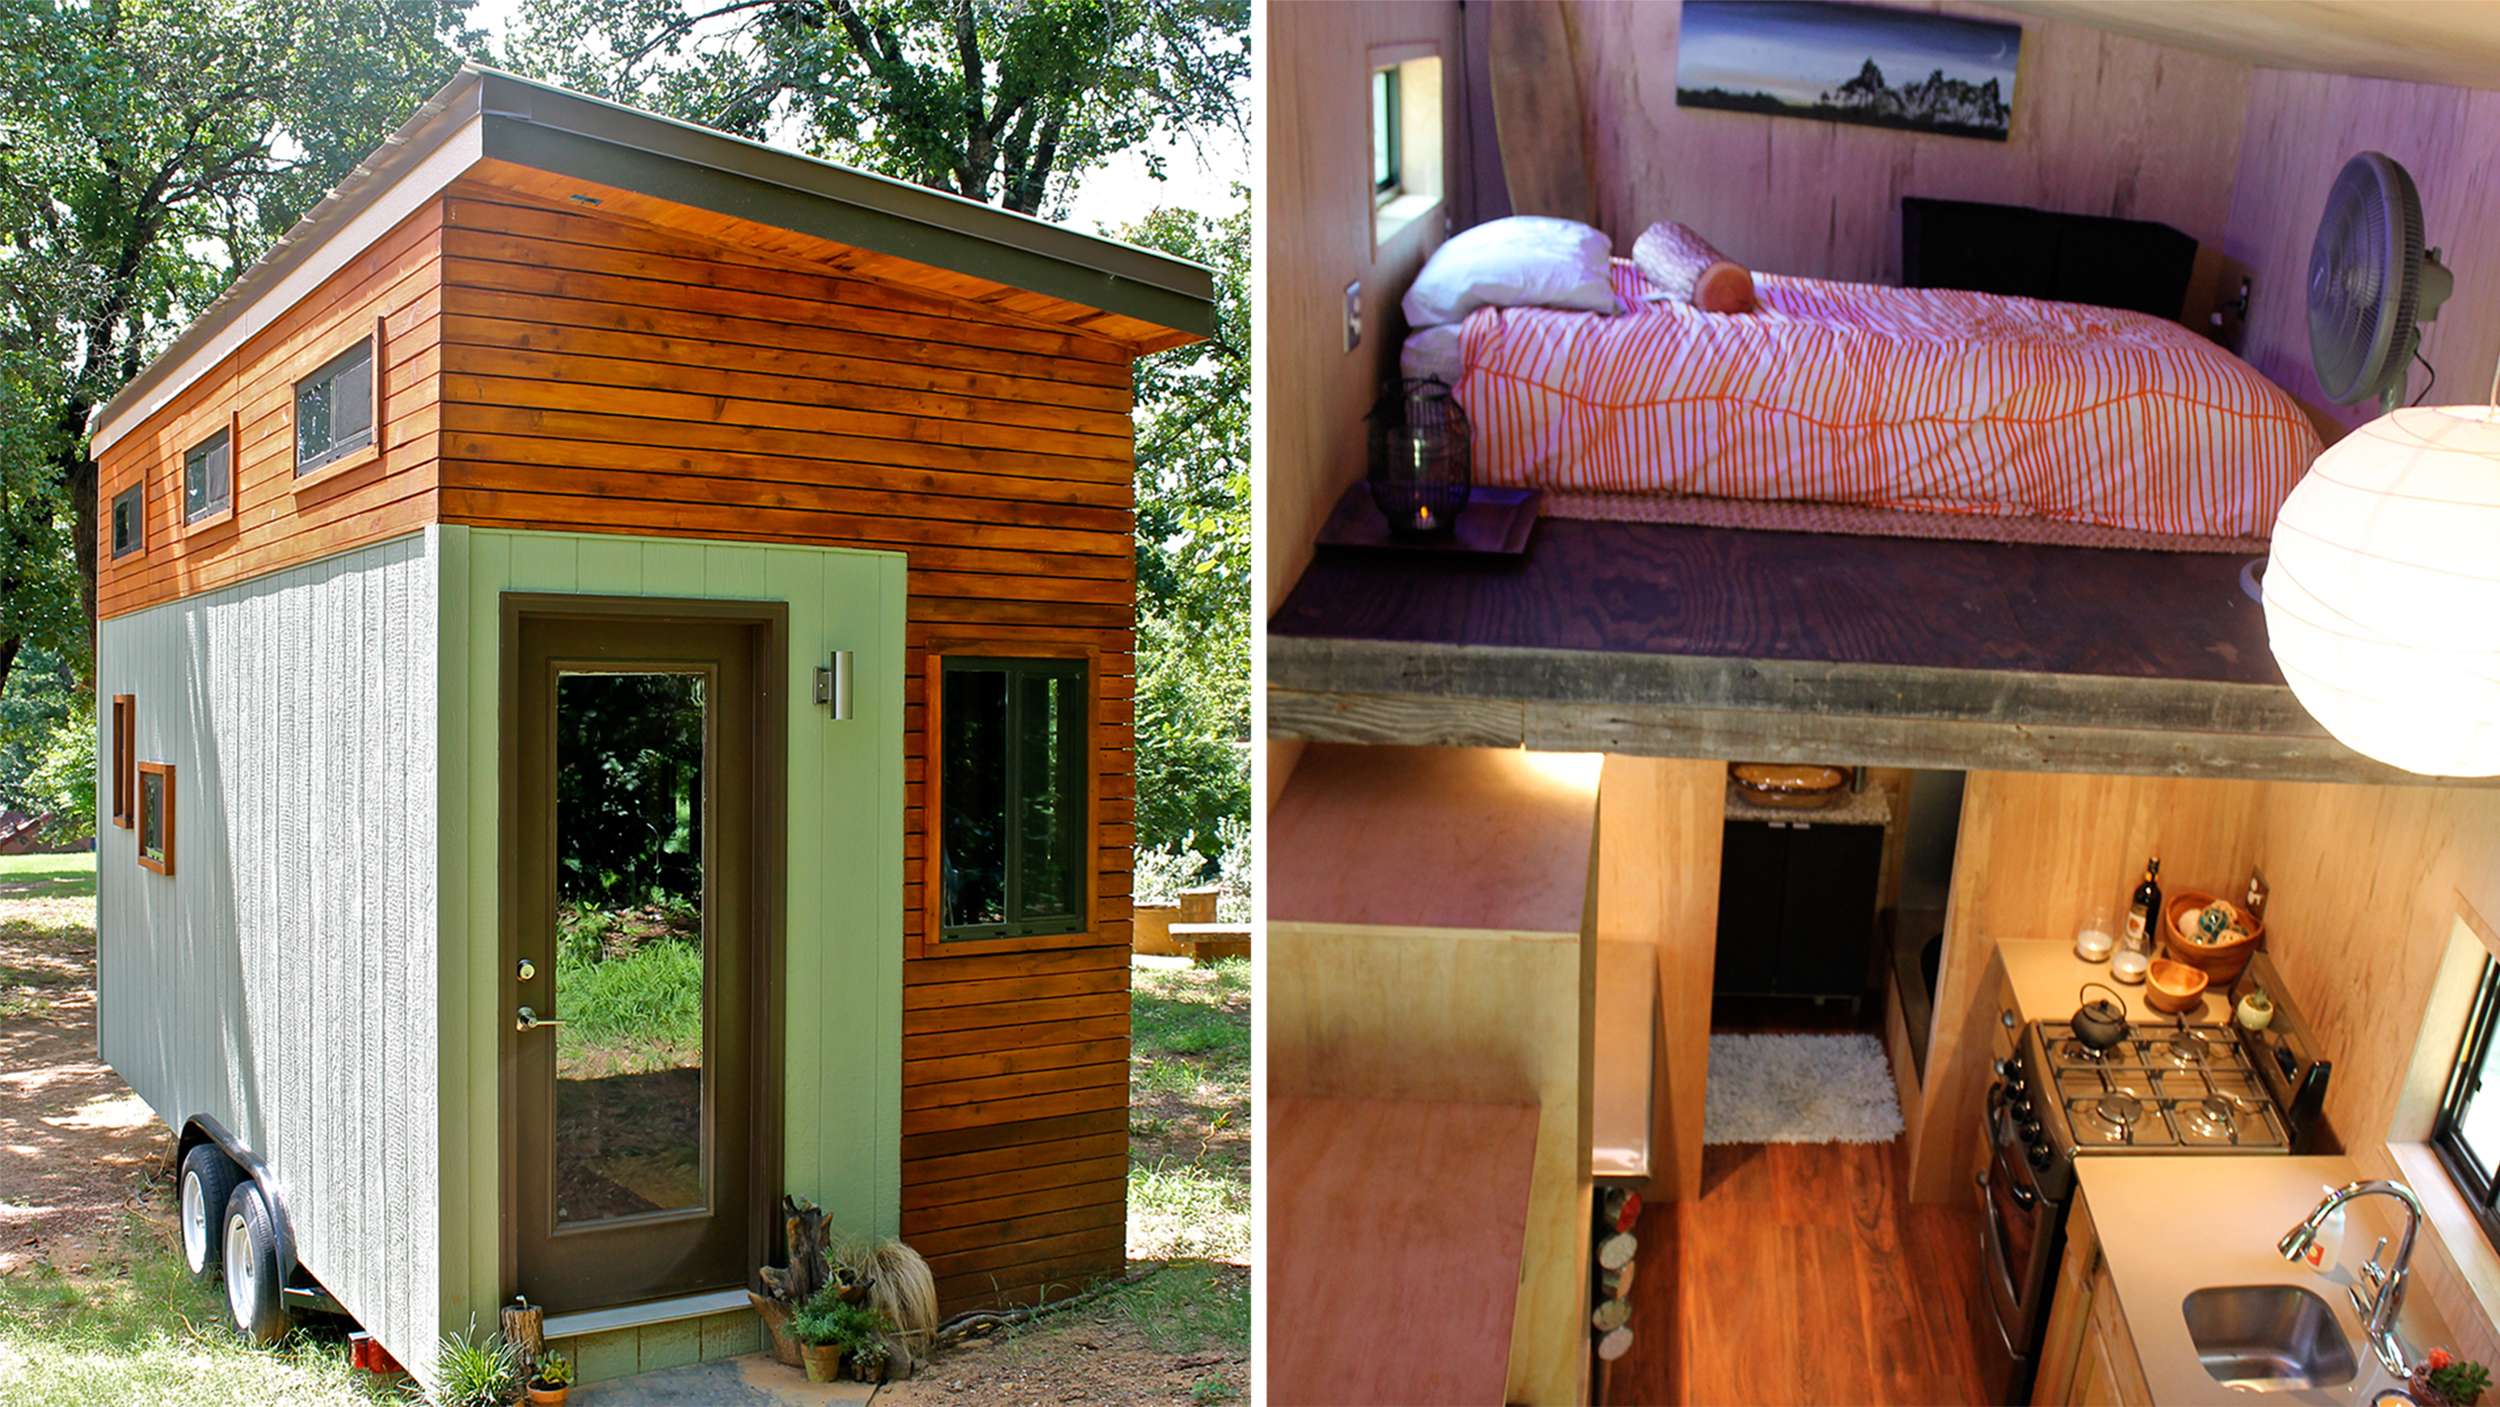 College Student Builds Tiny Home To Graduate Debt-free